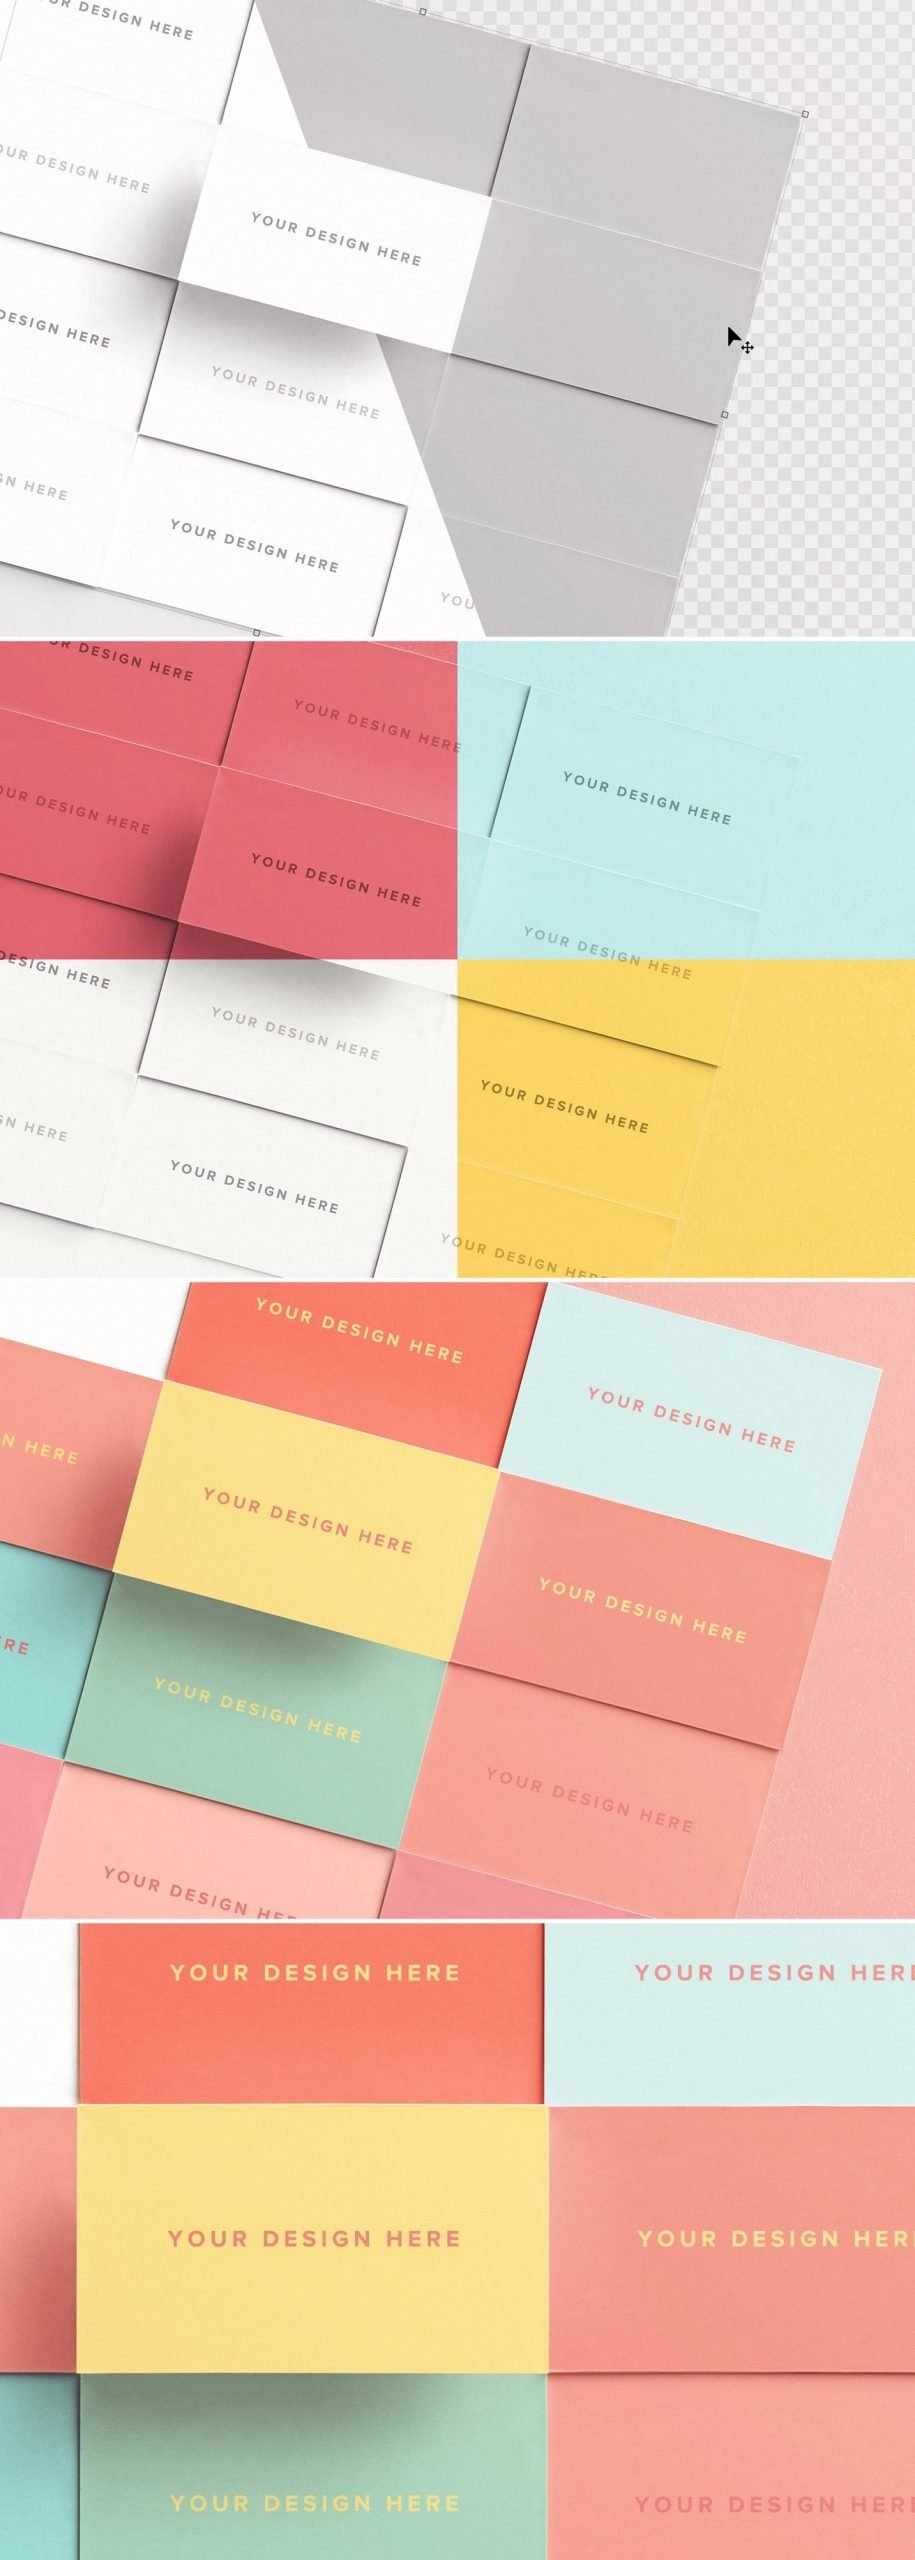 business cards layout mockup preview1 1 scaled